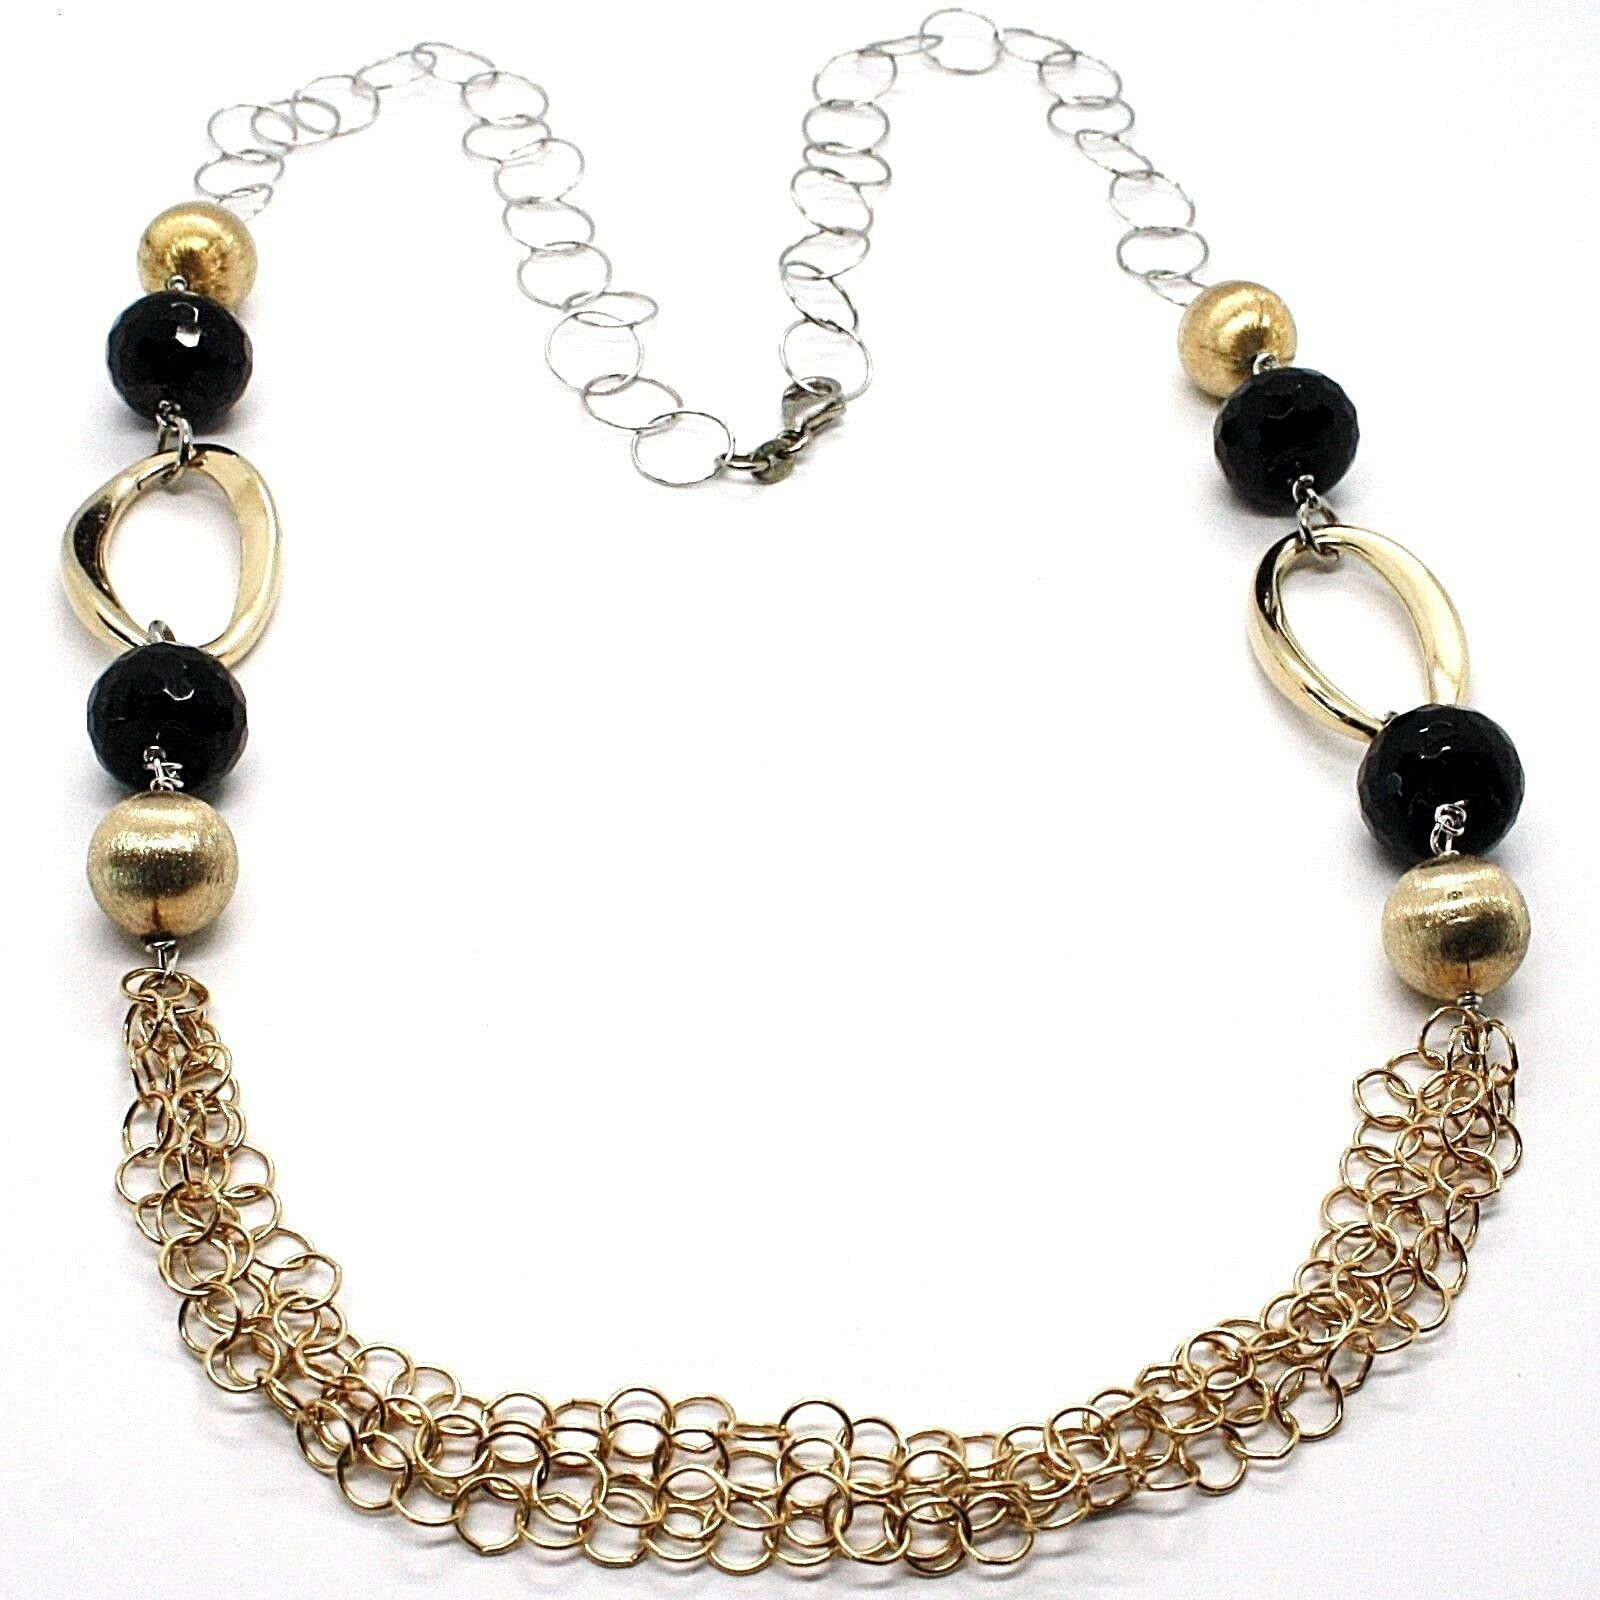 Necklace Silver 925, Onyx, Ovals Wavy, Spheres Satin, Chain Rolo '